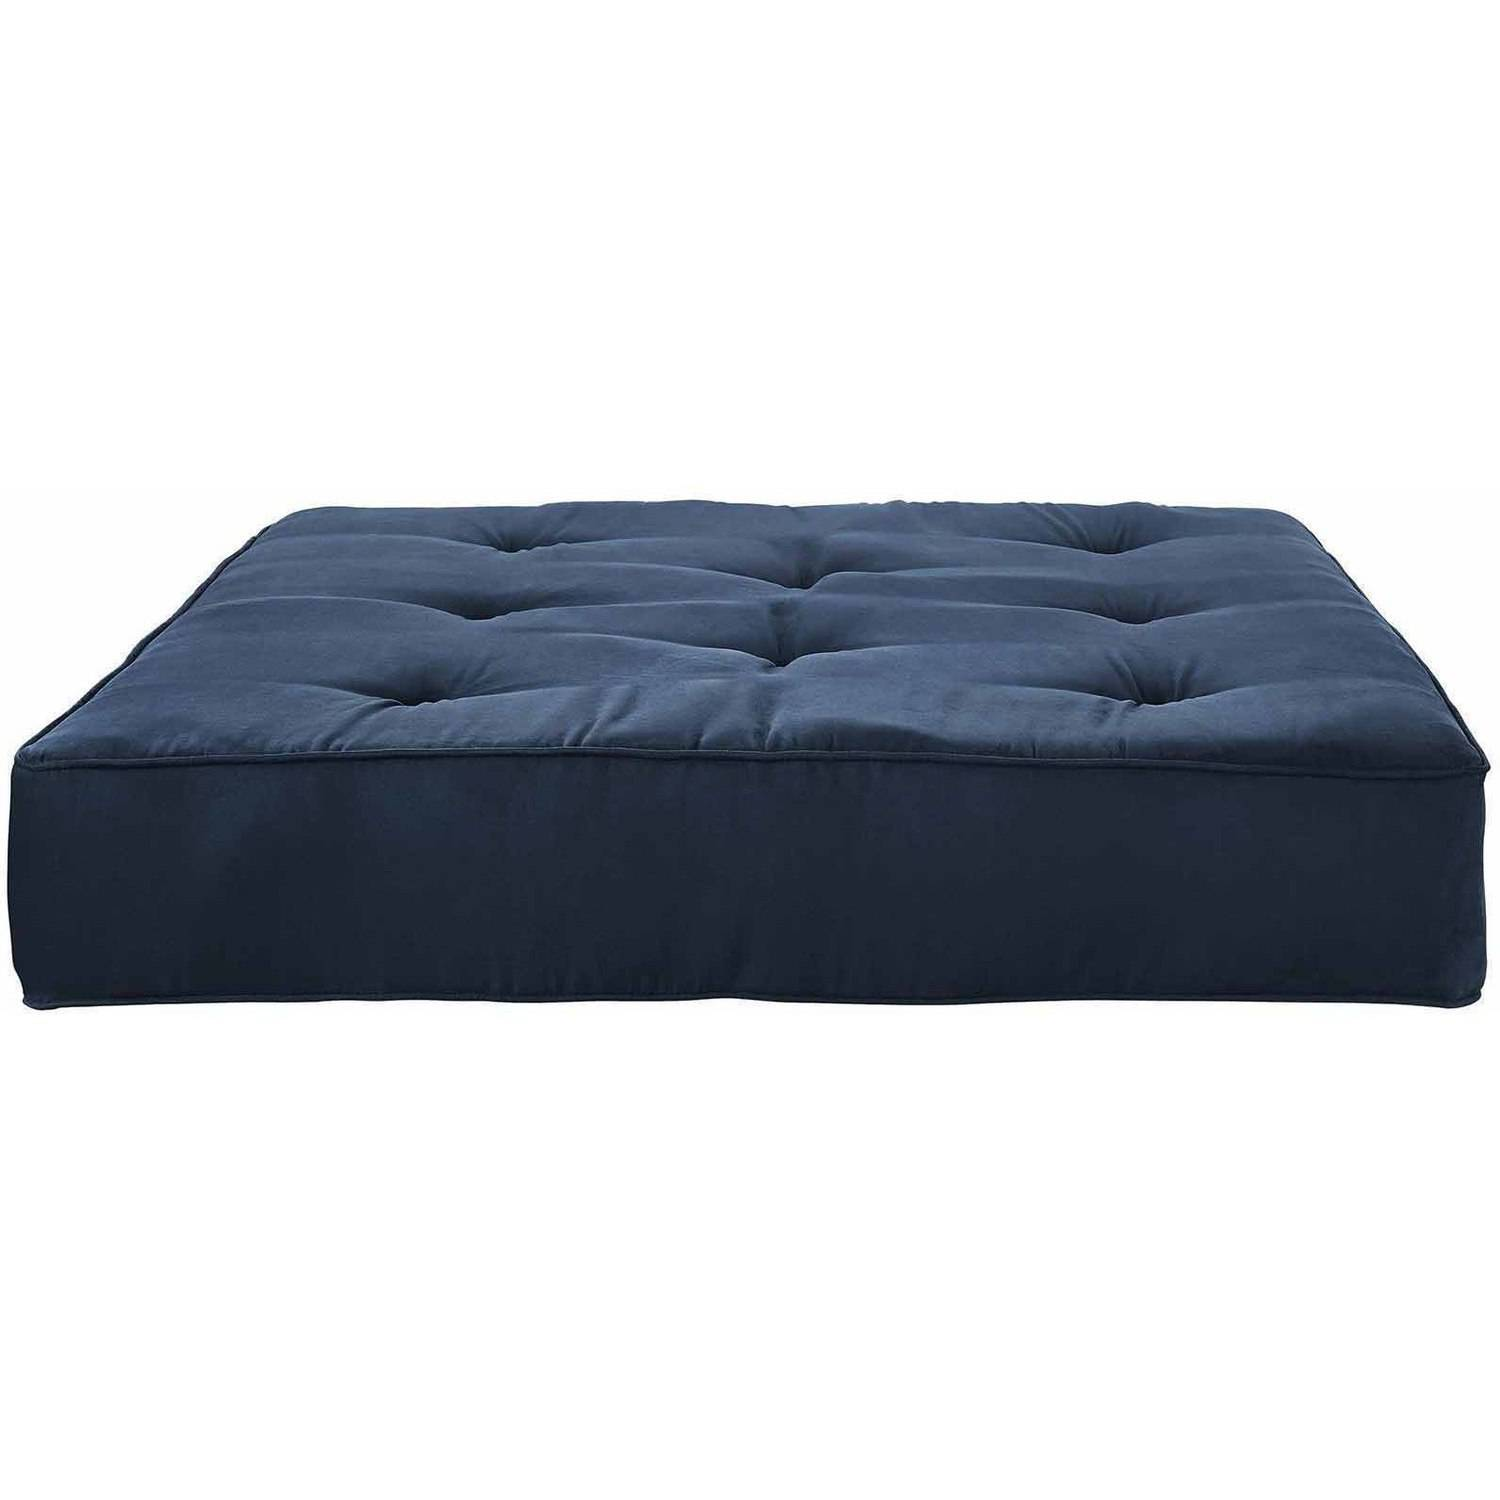 Futon mattress walmart in store roselawnlutheran for Sofa bed mattress pad walmart